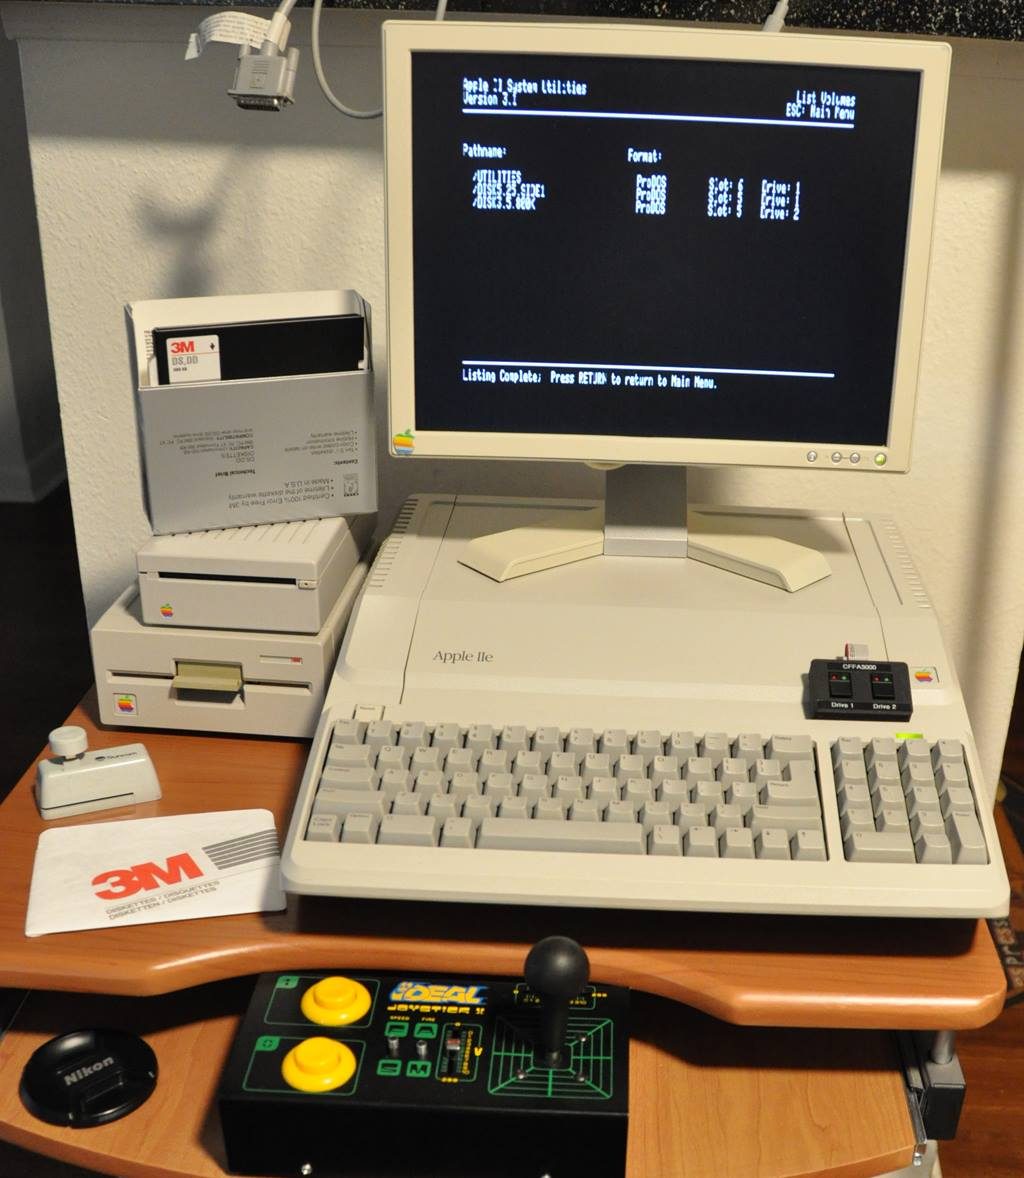 Apple //e Platinum with Retro Joystick